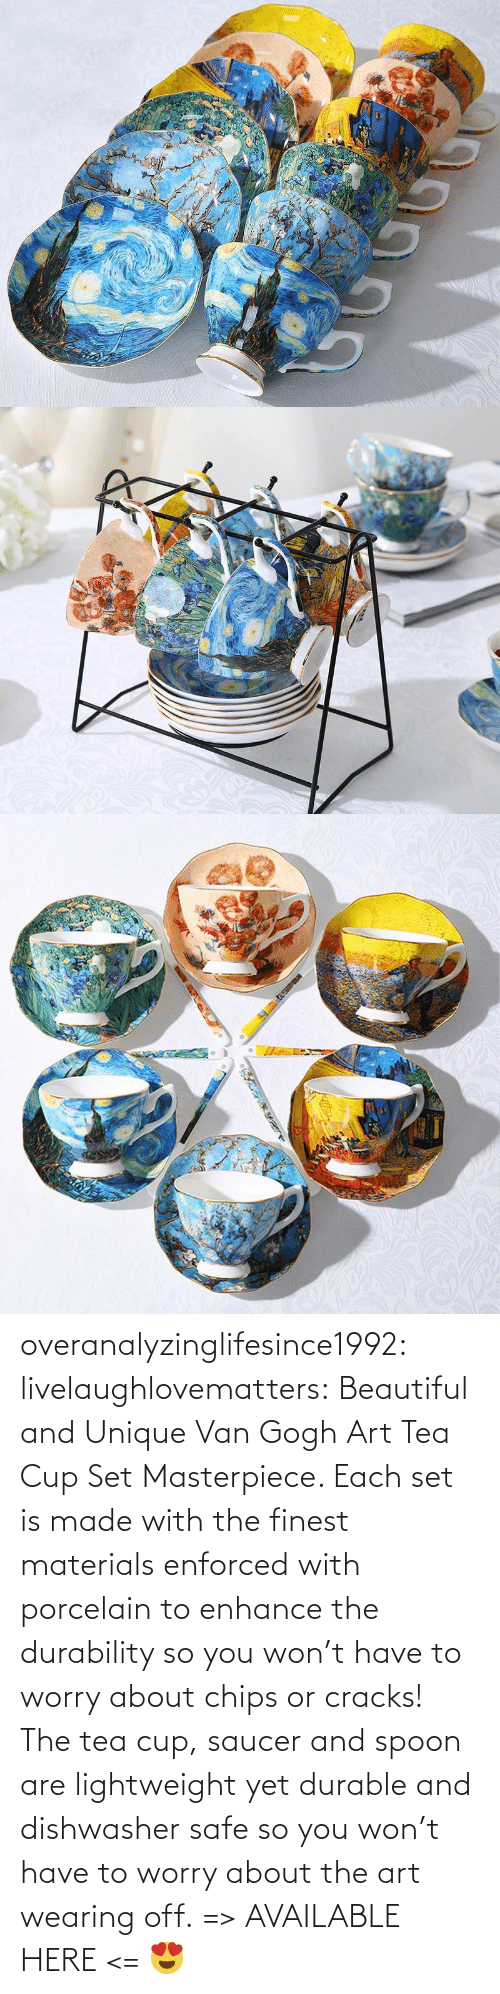 Lightweight: overanalyzinglifesince1992: livelaughlovematters:  Beautiful and Unique Van Gogh Art Tea Cup Set Masterpiece. Each set is made with the finest materials enforced with porcelain to enhance the durability so you won't have to worry about chips or cracks! The tea cup, saucer and spoon are lightweight yet durable and dishwasher safe so you won't have to worry about the art wearing off. => AVAILABLE HERE <=    😍